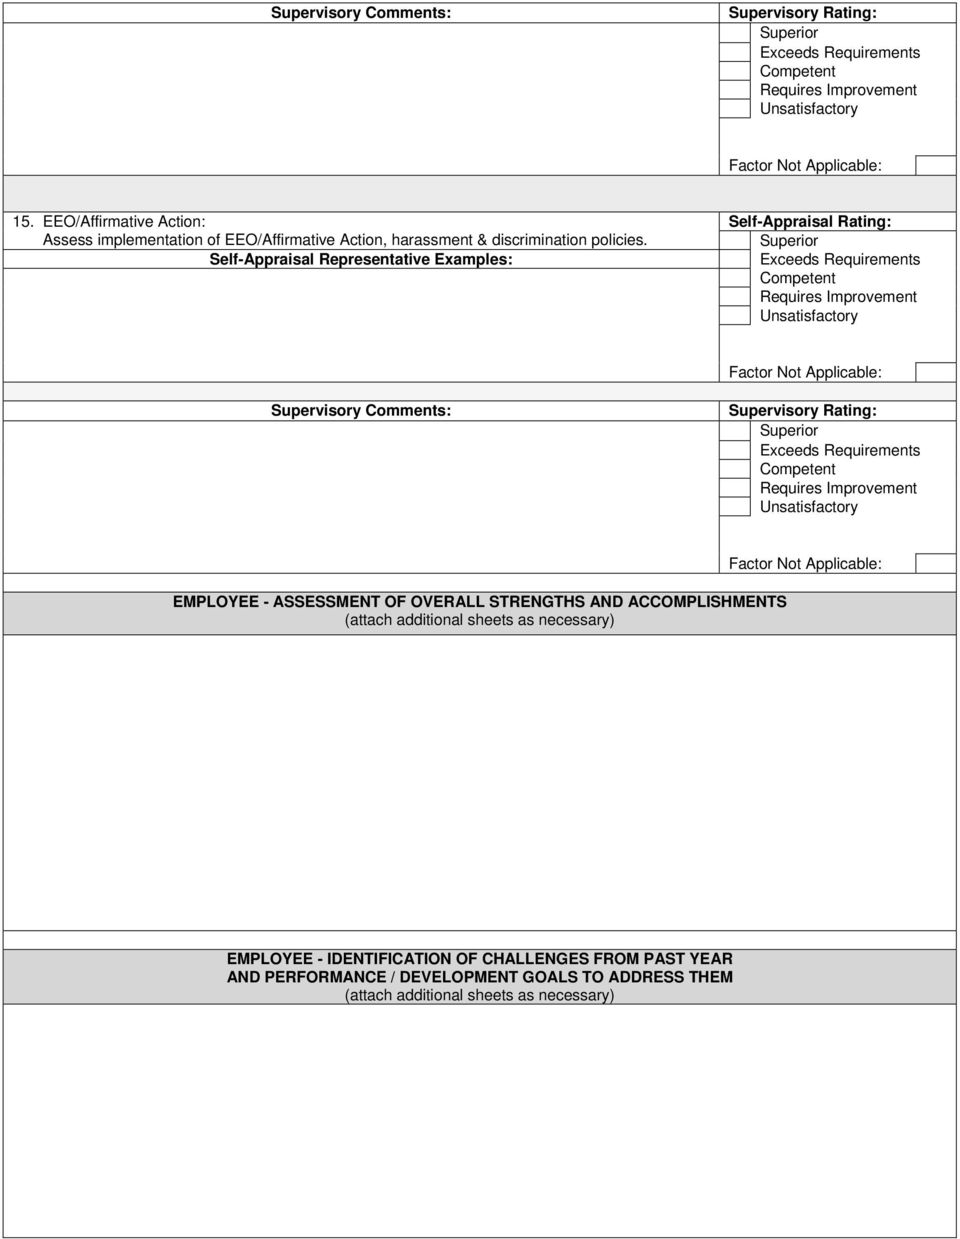 EMPLOYEE - ASSESSMENT OF OVERALL STRENGTHS AND ACCOMPLISHMENTS (attach additional sheets